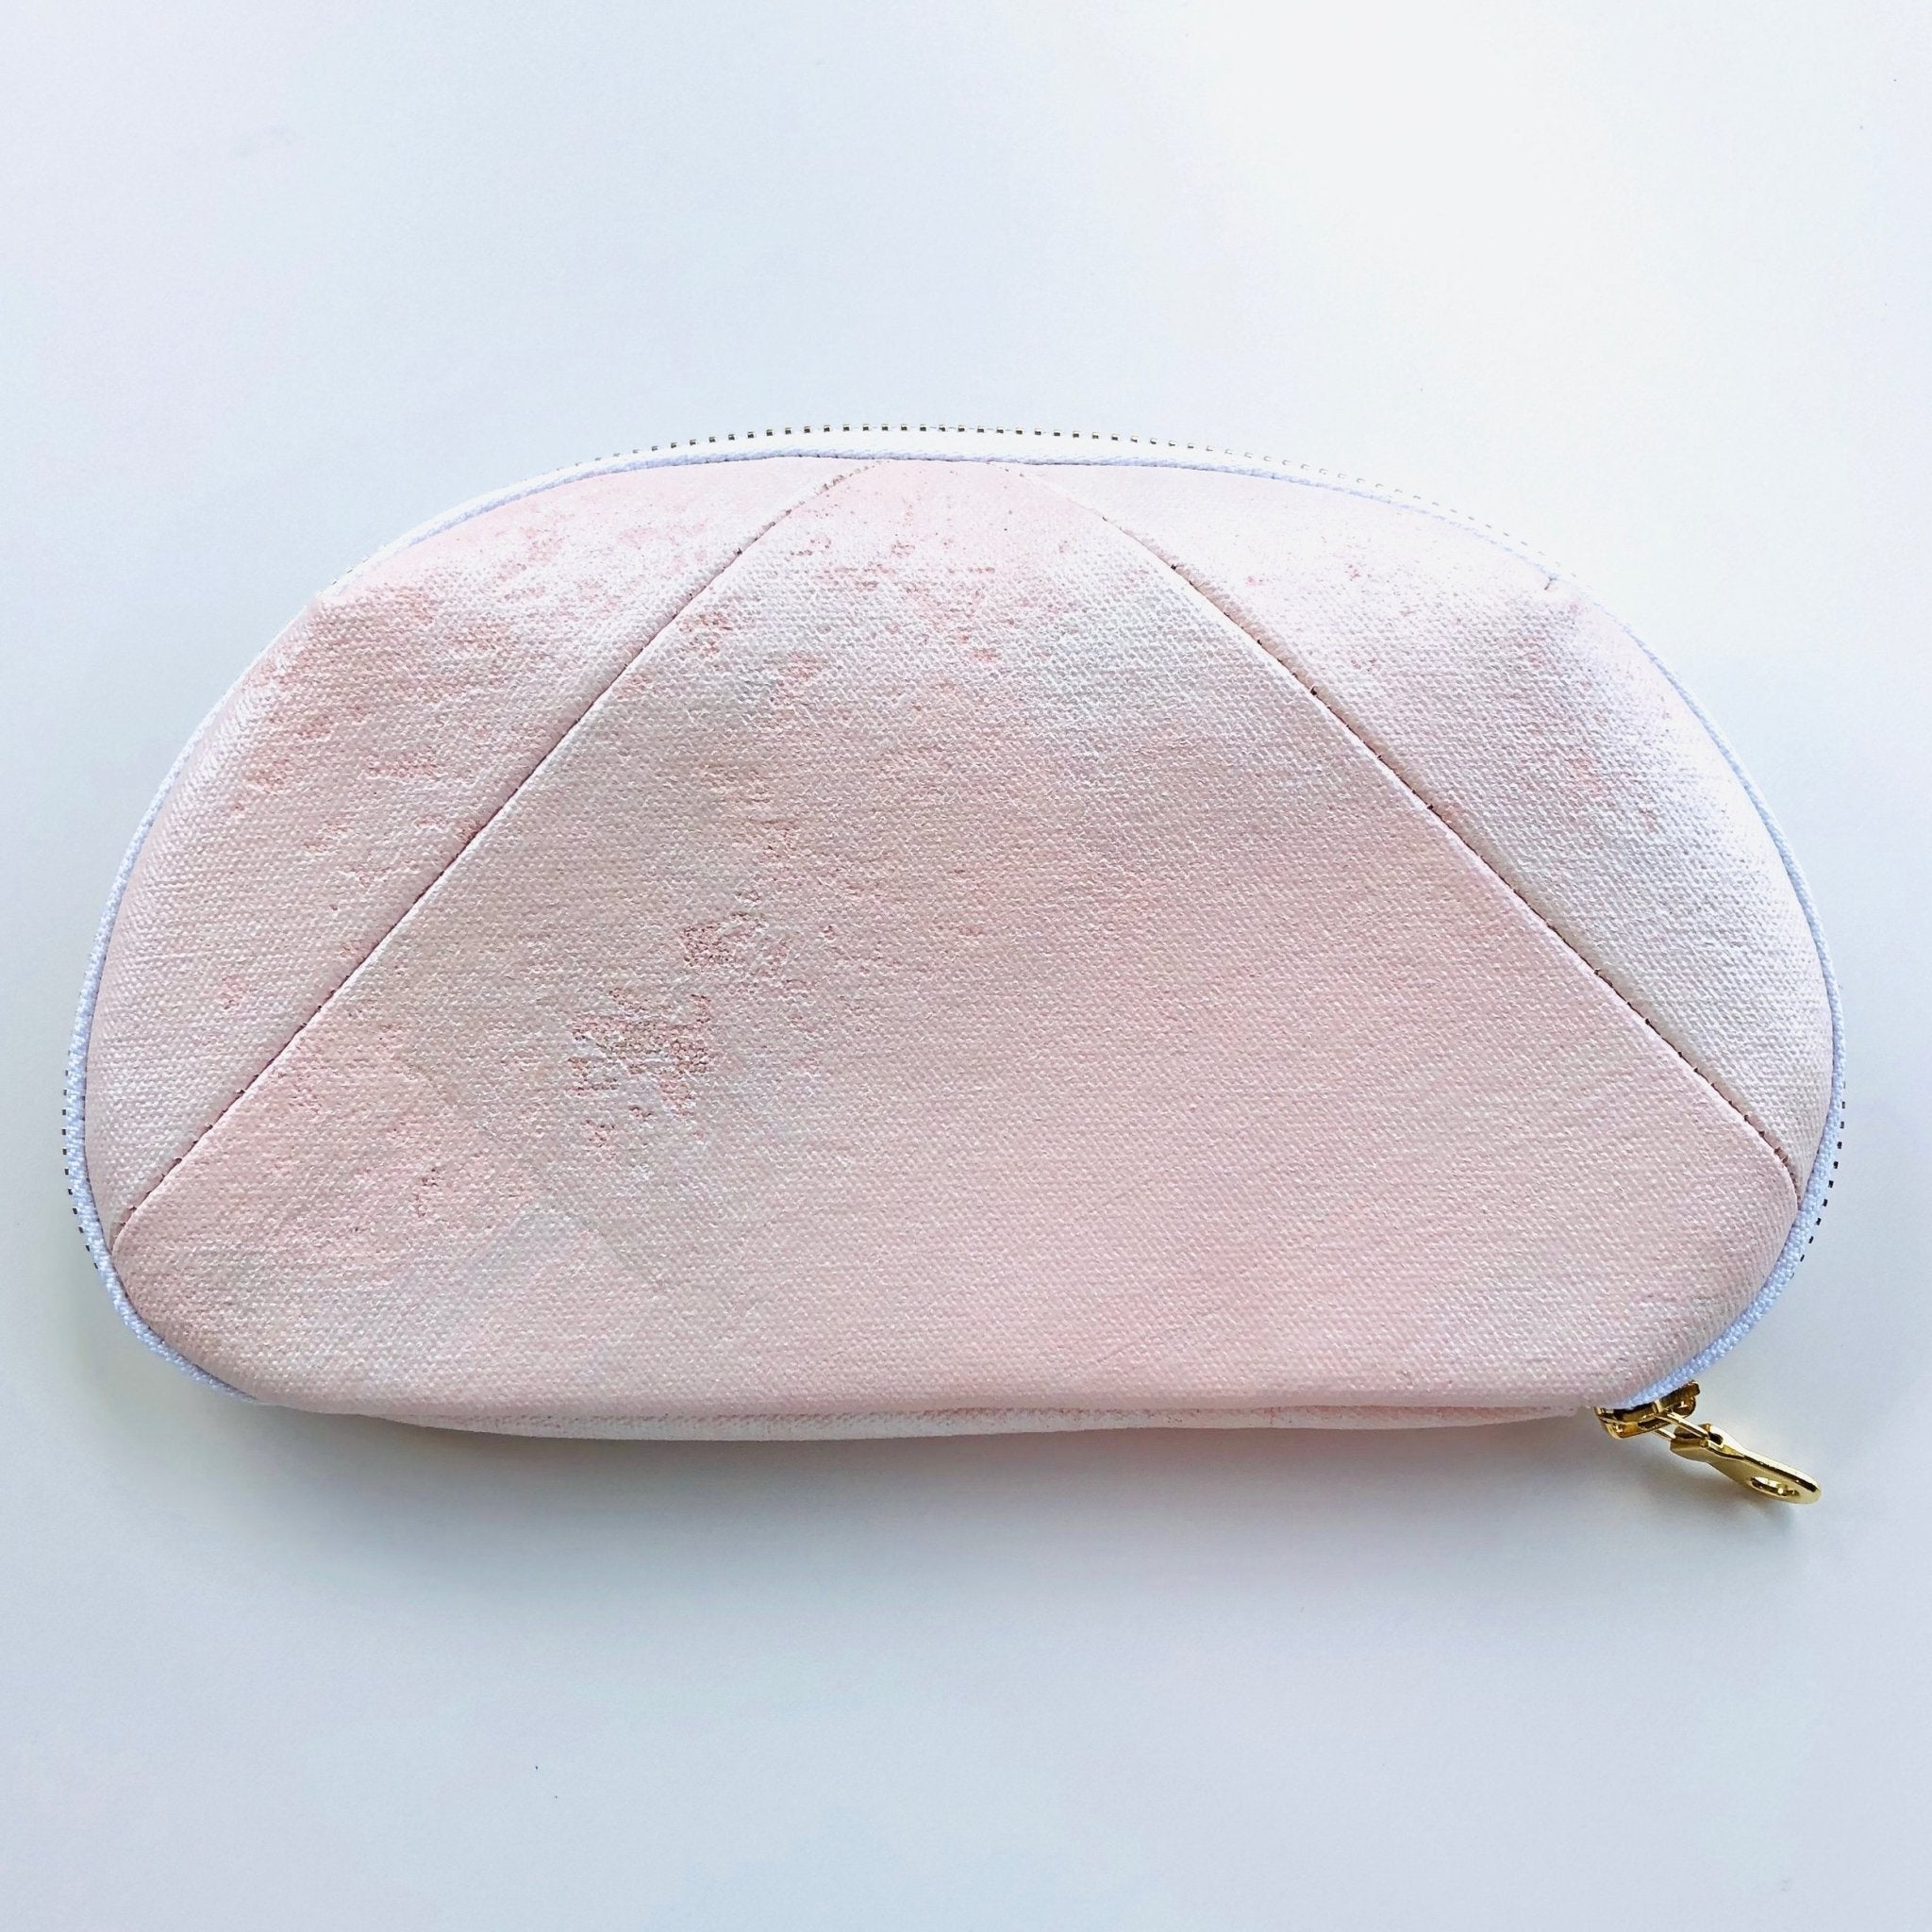 Essential Oil Case - Rose Quartz - The Wong Way